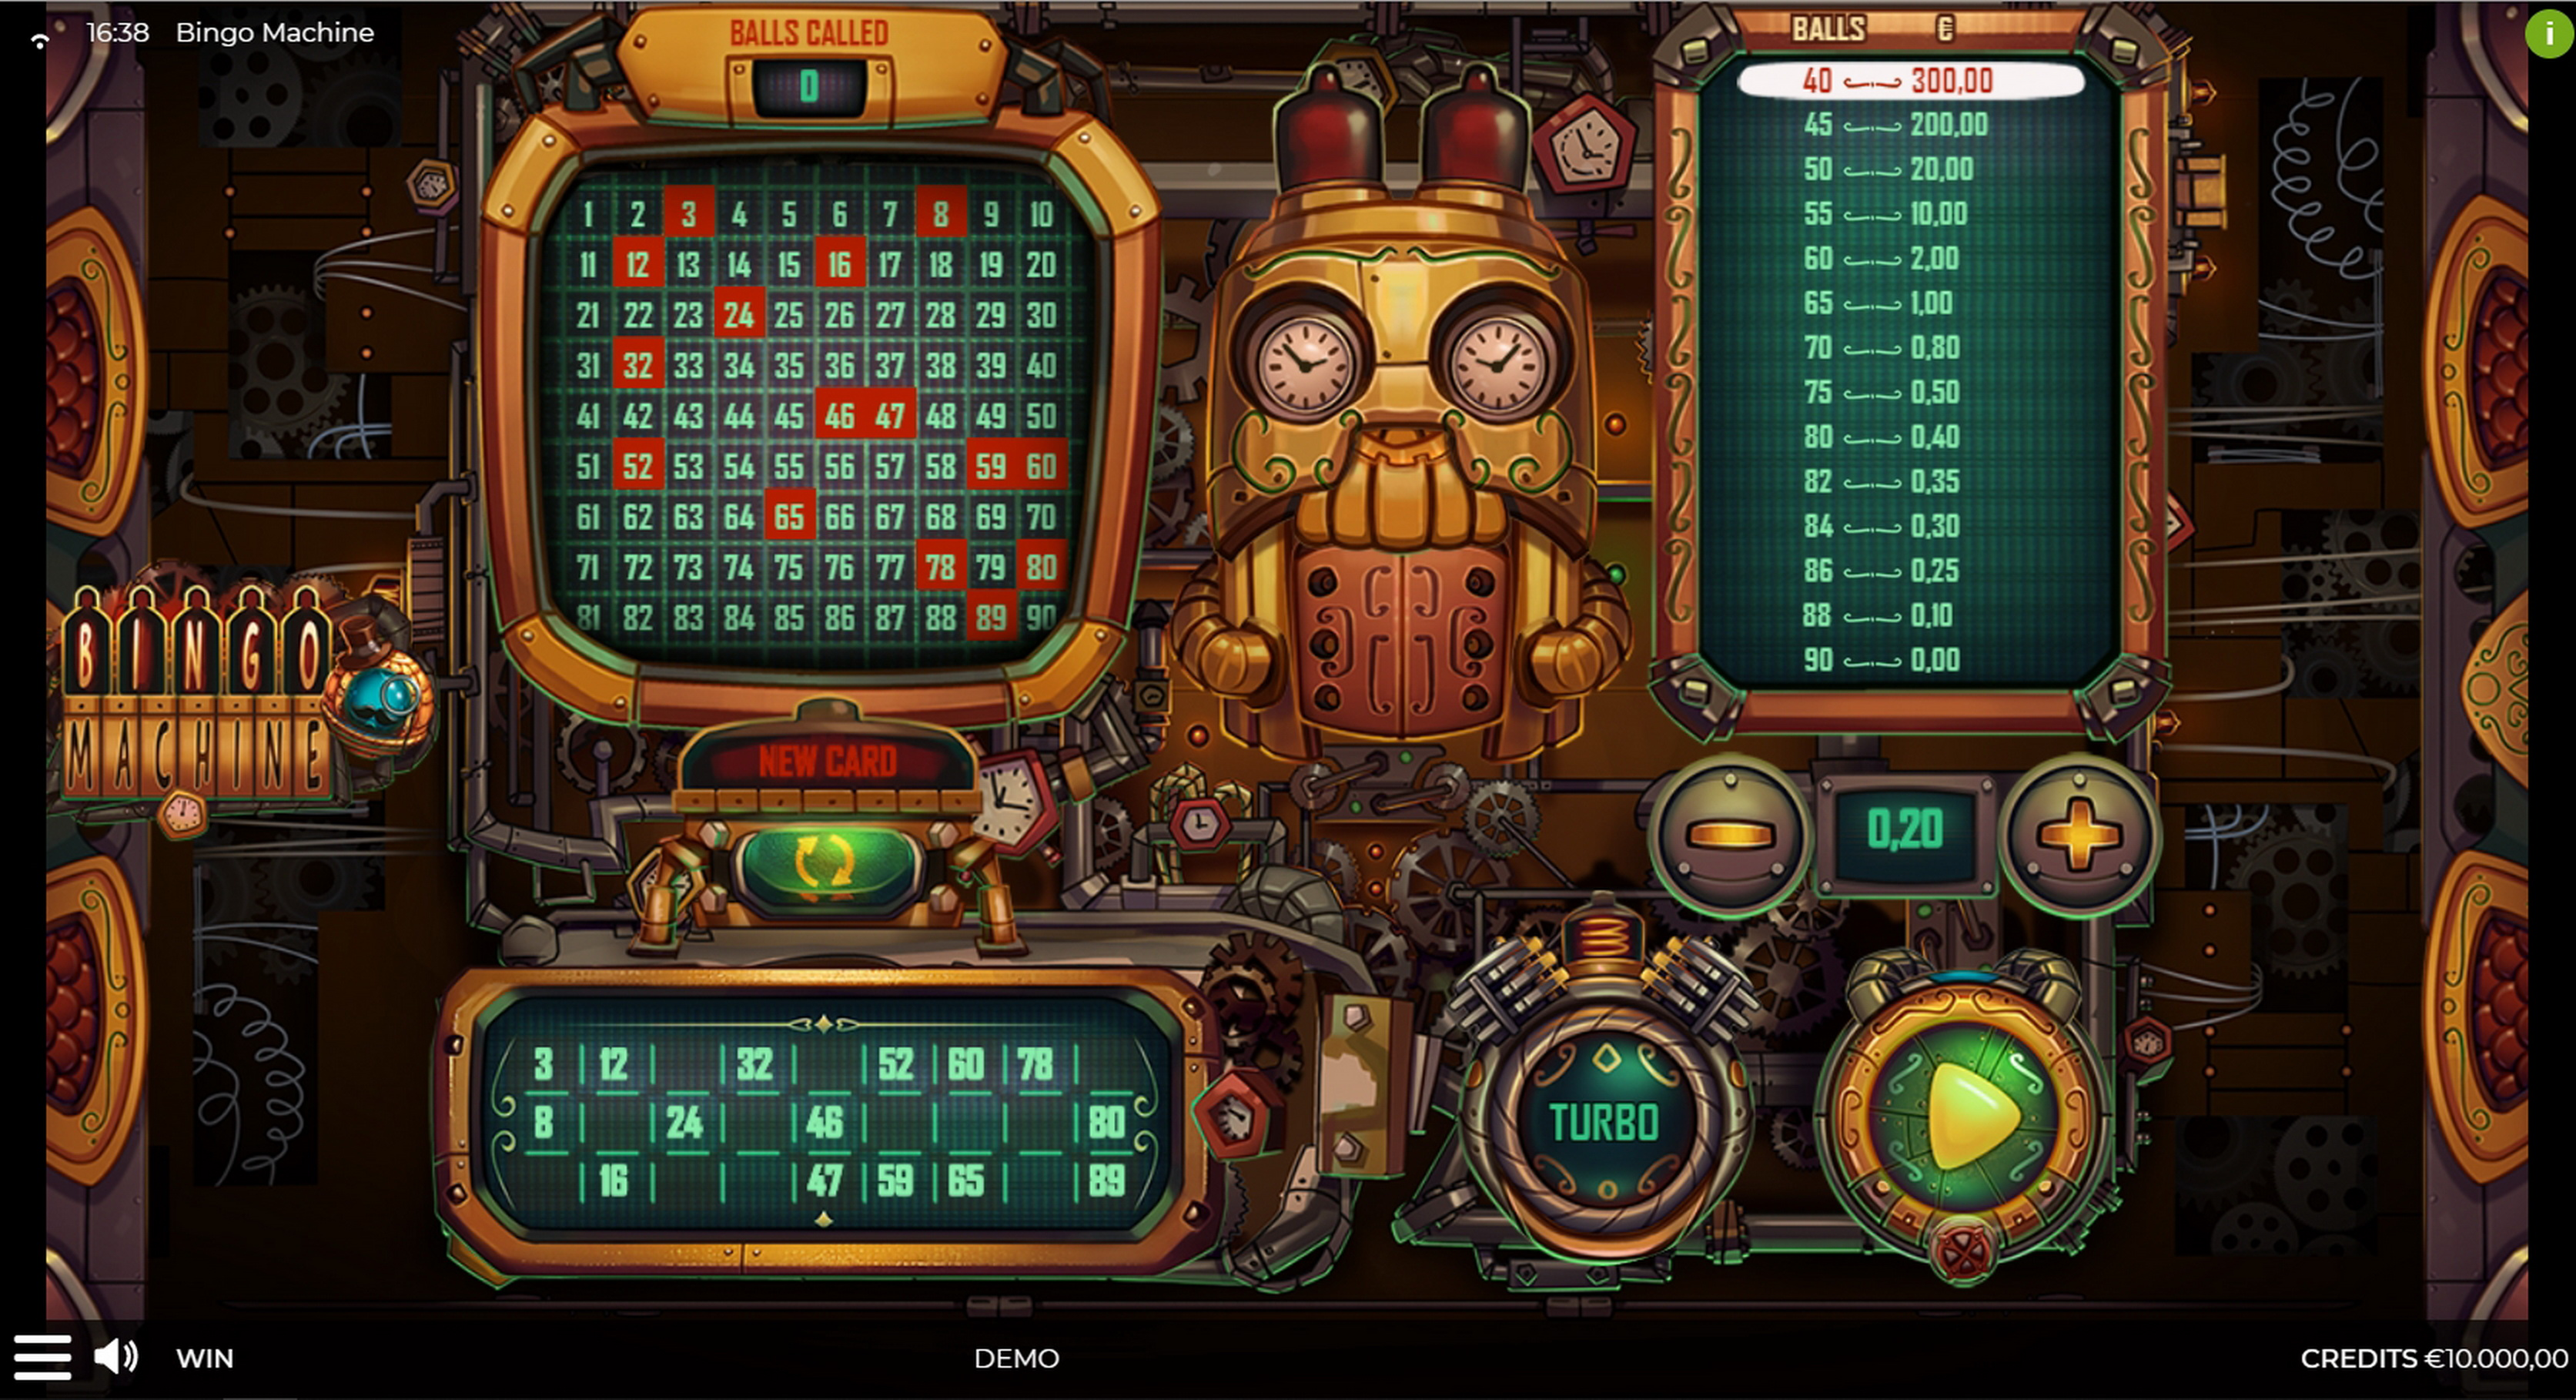 Reels in Bingo Machine Slot Game by Spinmatic